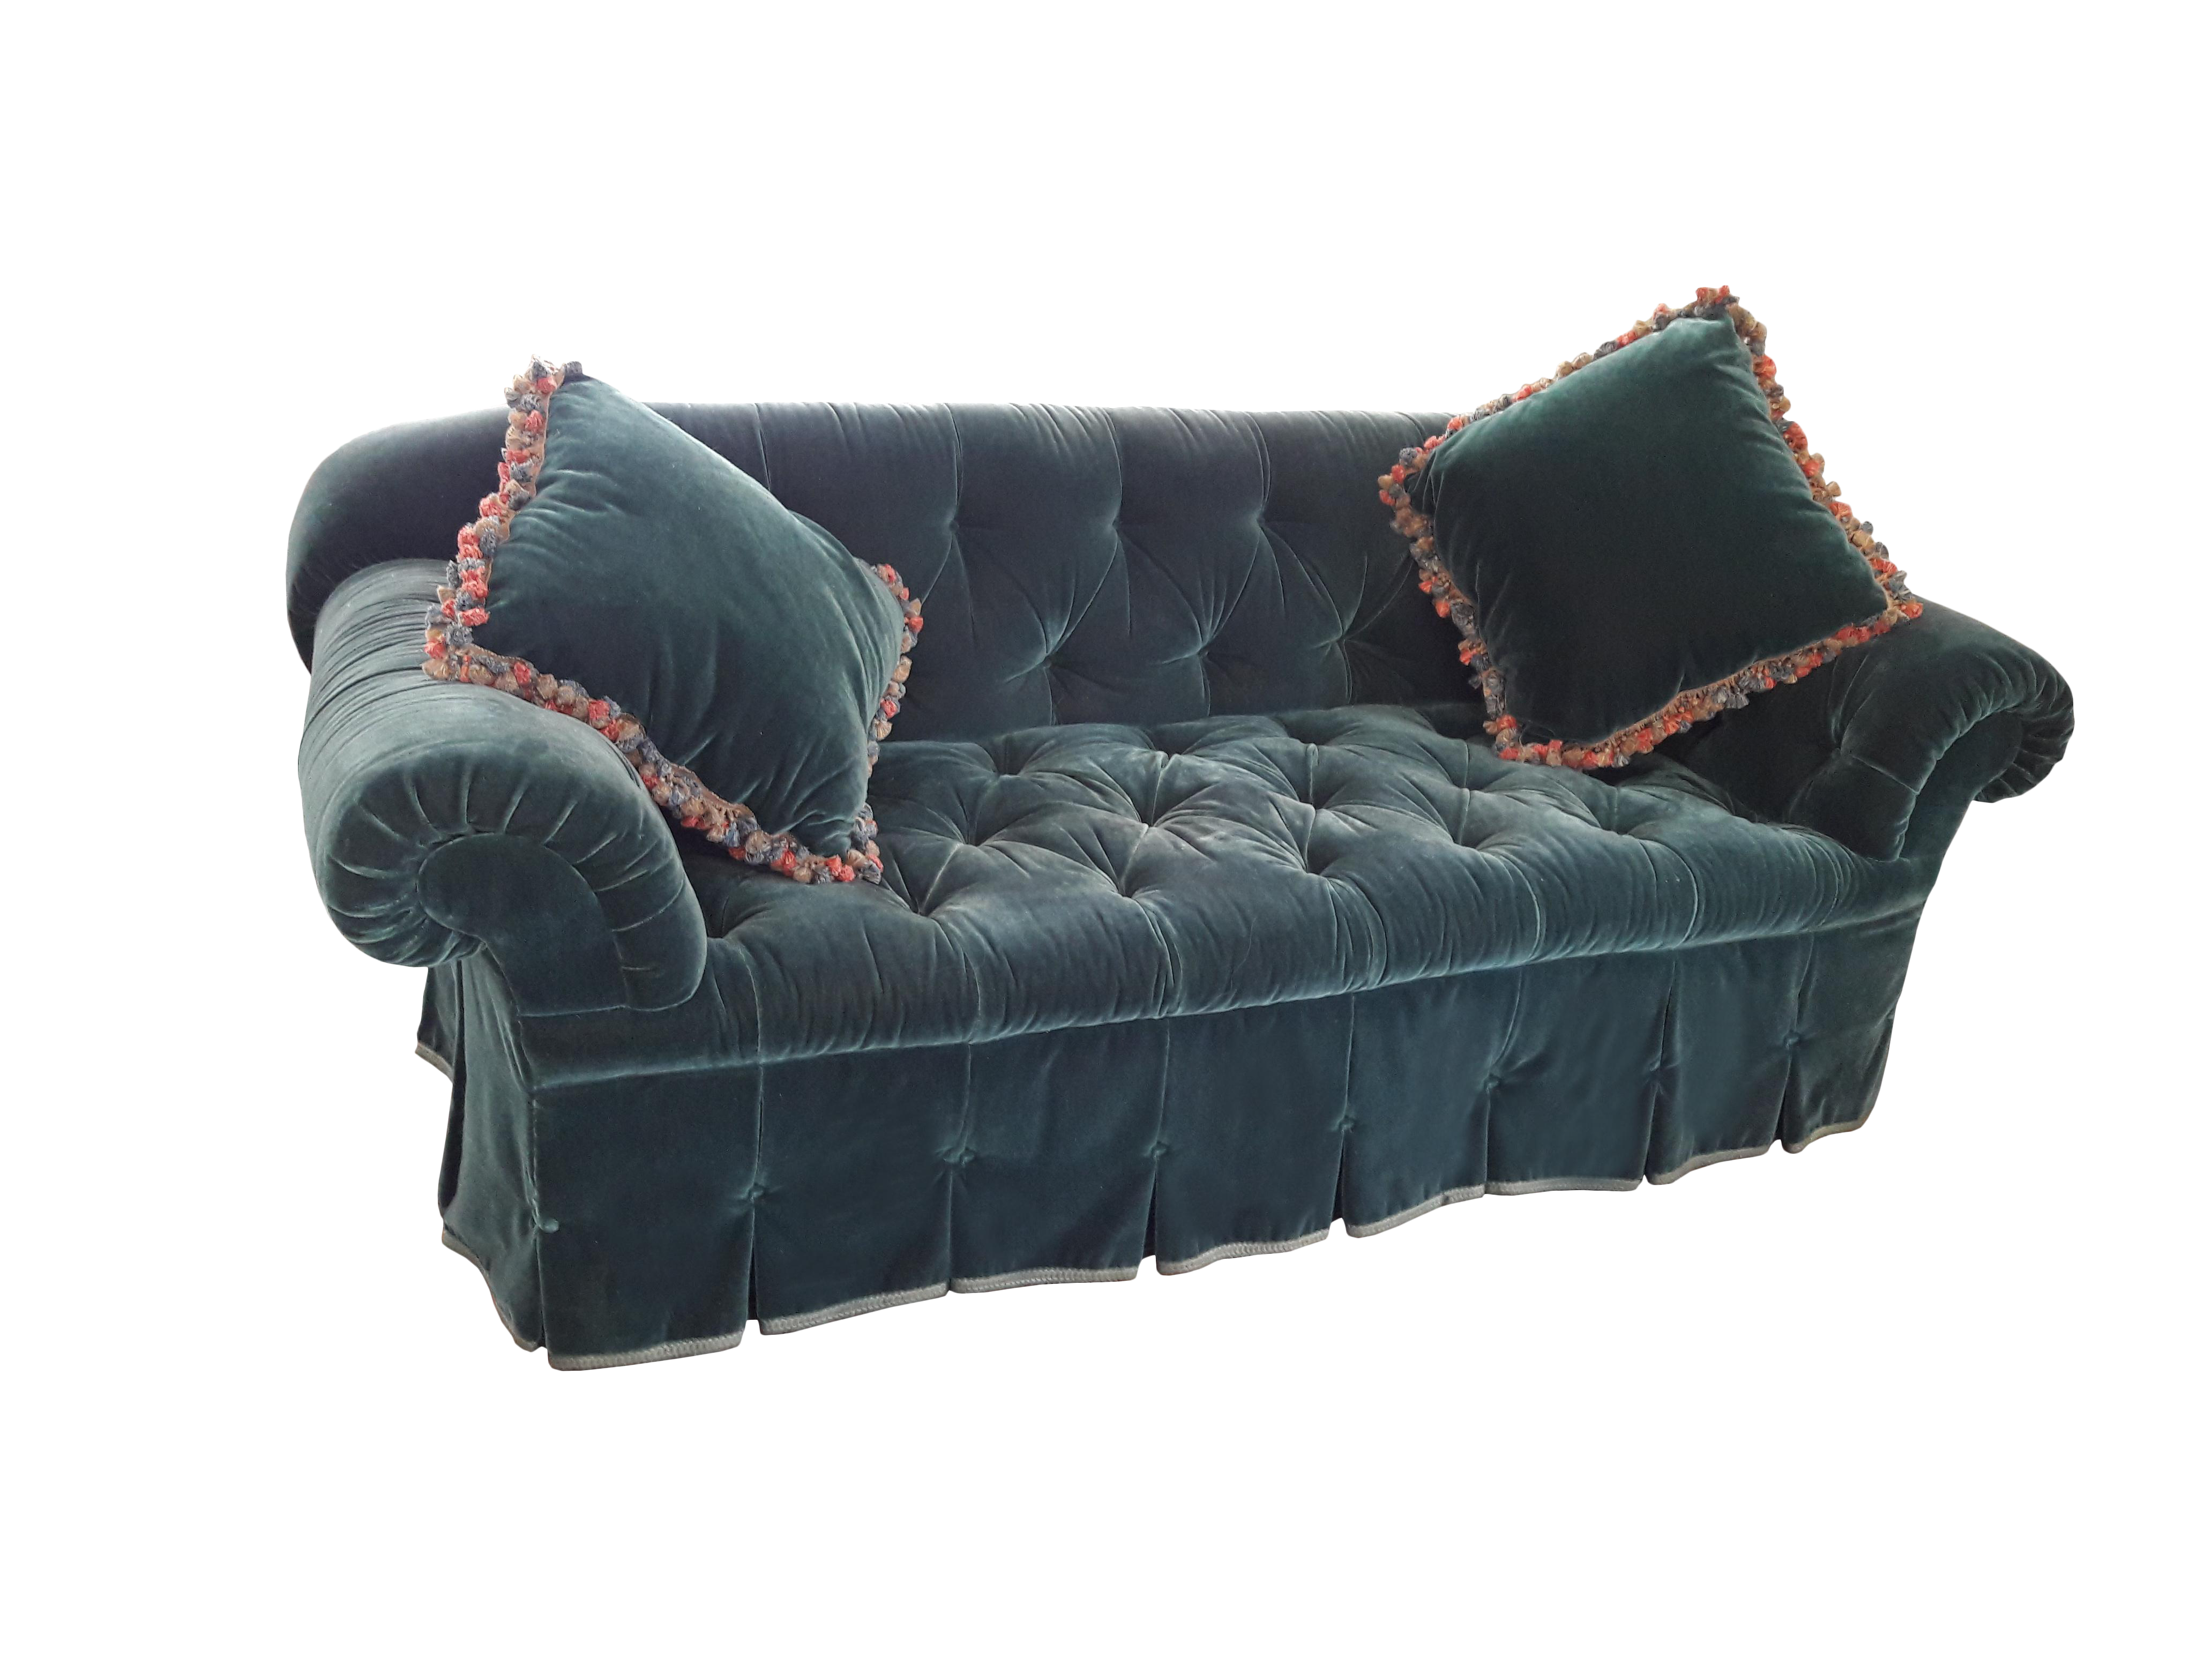 teal velvet chesterfield sofa chairish. Black Bedroom Furniture Sets. Home Design Ideas